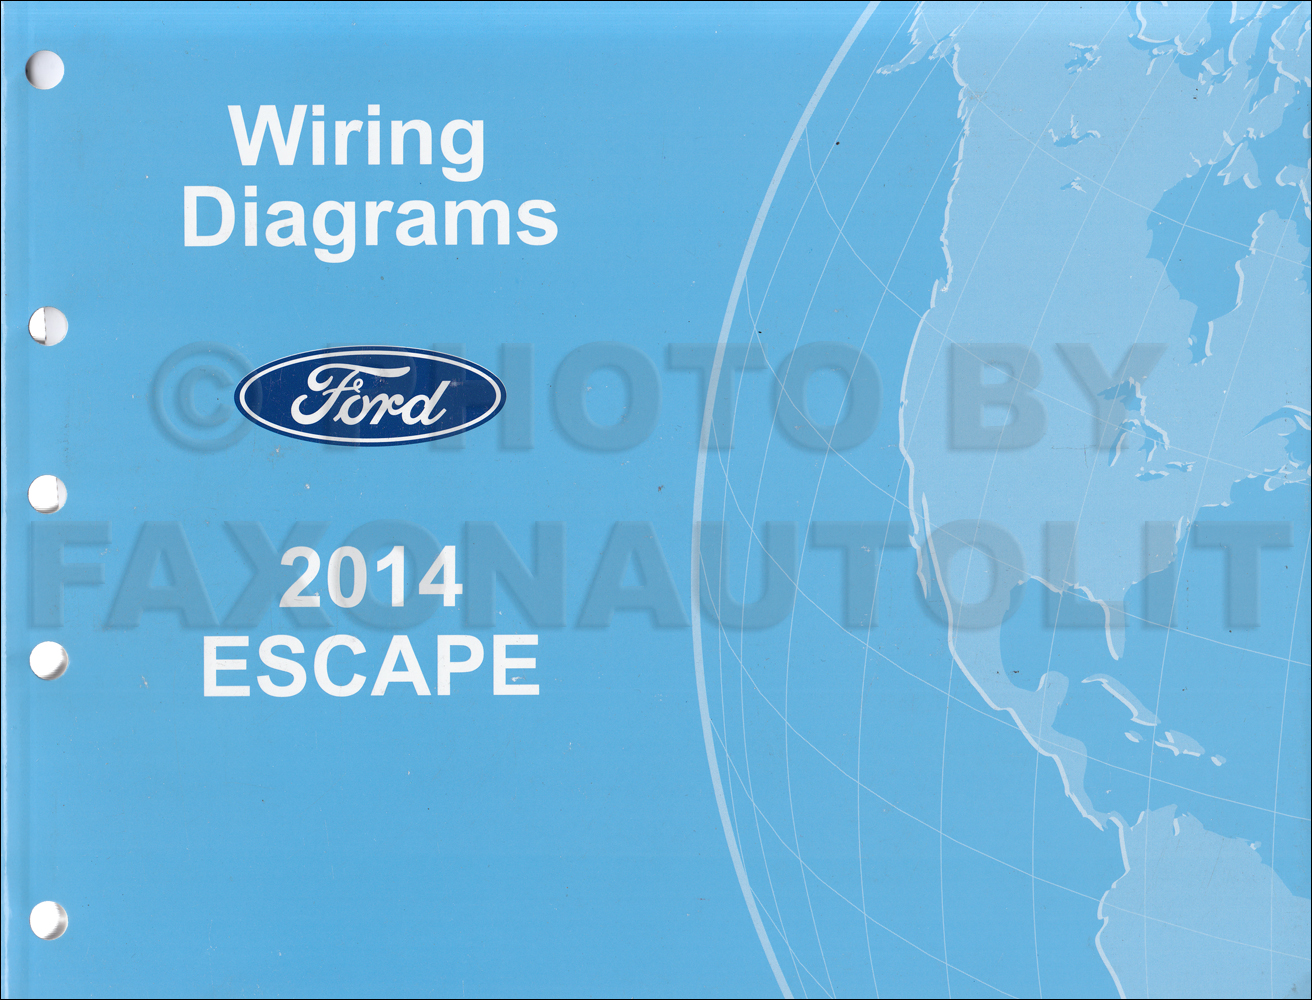 2013 Ford Escape Wiring Diagram - Wiring Diagram Featured  Ford Escape Wiring Diagram on 2011 honda accord wiring diagram, 2011 hyundai sonata wiring diagram, 2011 ford f-350 wiring diagram, 2011 ford super duty wiring diagram, 2003 ford excursion wiring diagram, 2008 ford mustang wiring diagram, 2011 dodge nitro wiring diagram, 2012 ford escape antenna, 2012 ford escape rear door latch, 2009 ford mustang wiring diagram, 2012 ford escape belt diagram, 2012 ford escape parts list, 2014 ford f150 wiring diagram, 2012 ford escape automatic transmission, 2012 ford escape xlt, 2010 ford mustang wiring diagram, 2011 buick lucerne wiring diagram, 2012 ford escape battery, 2012 ford escape seats, ford escape electrical diagram,